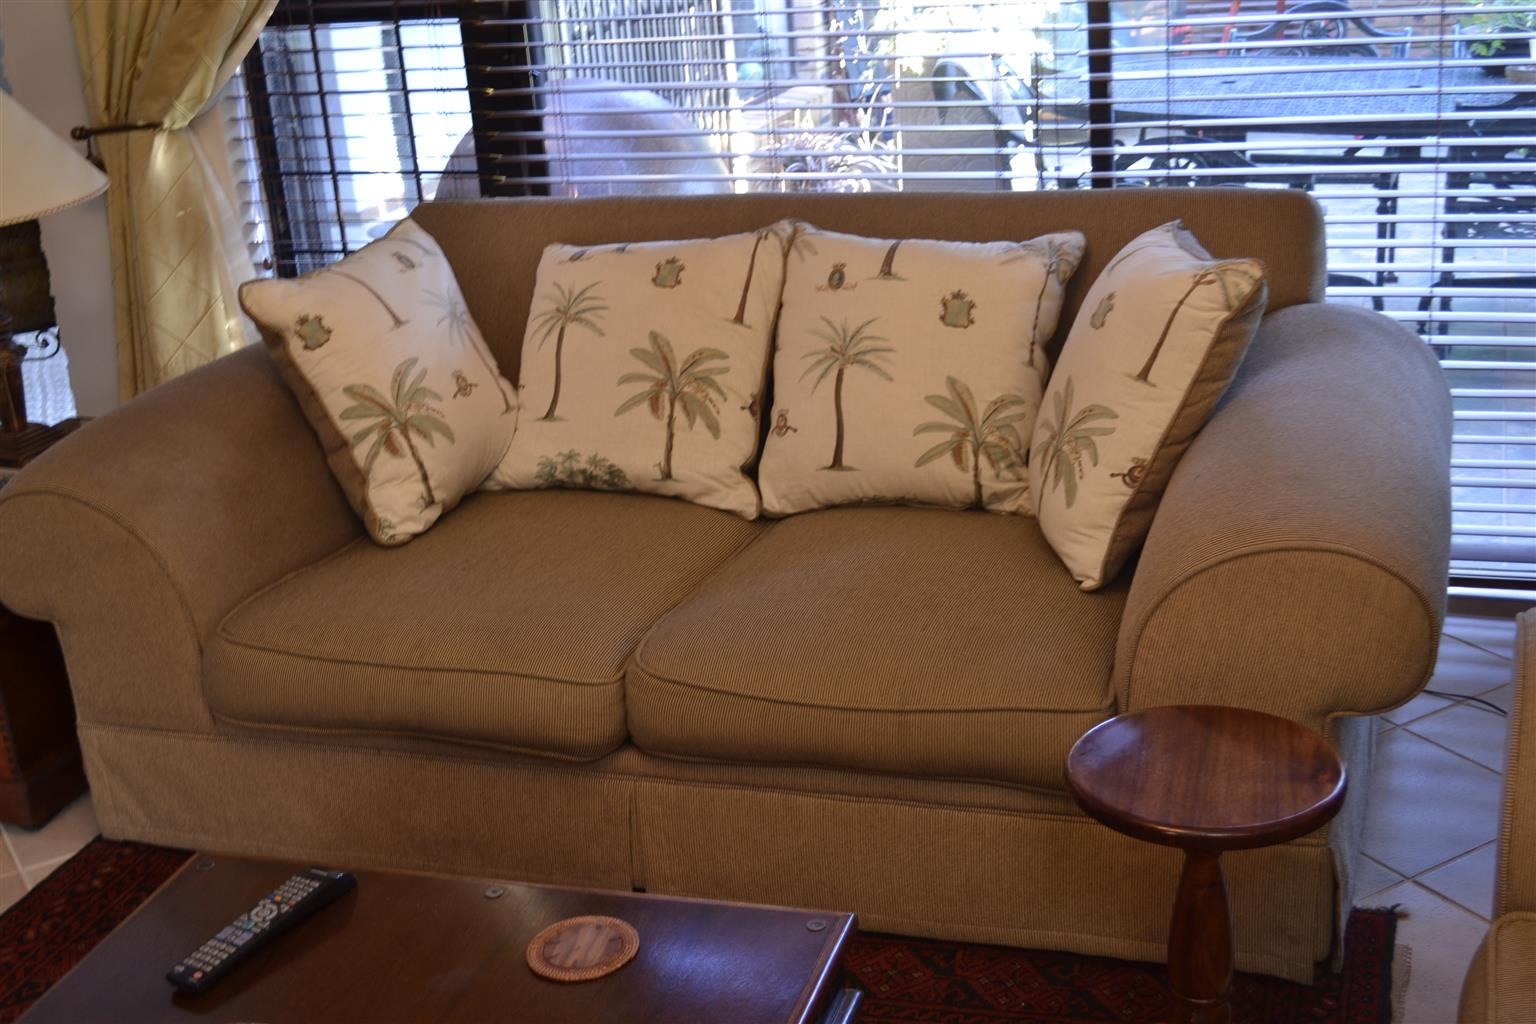 Wetherlys 2 + 3 seater couch.